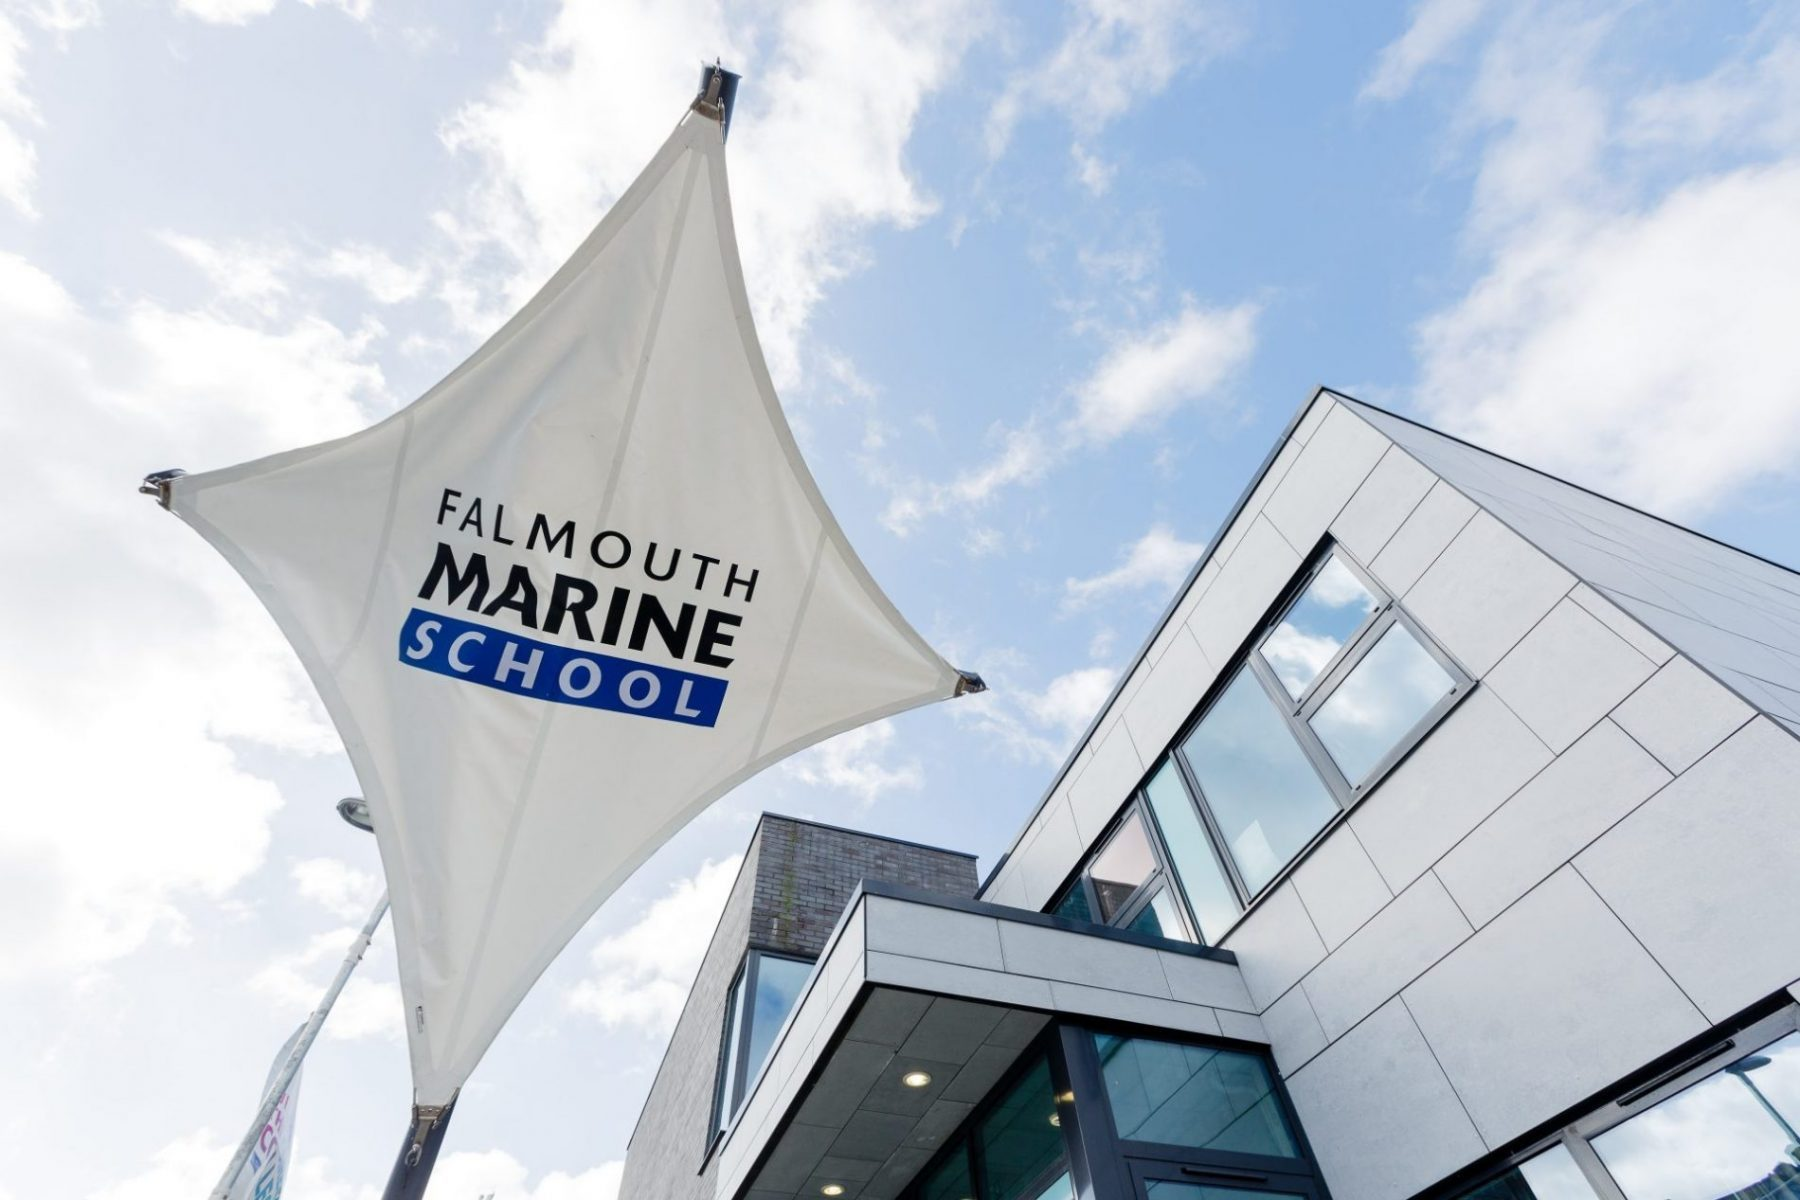 falmouth marine school flag with building and blue sky